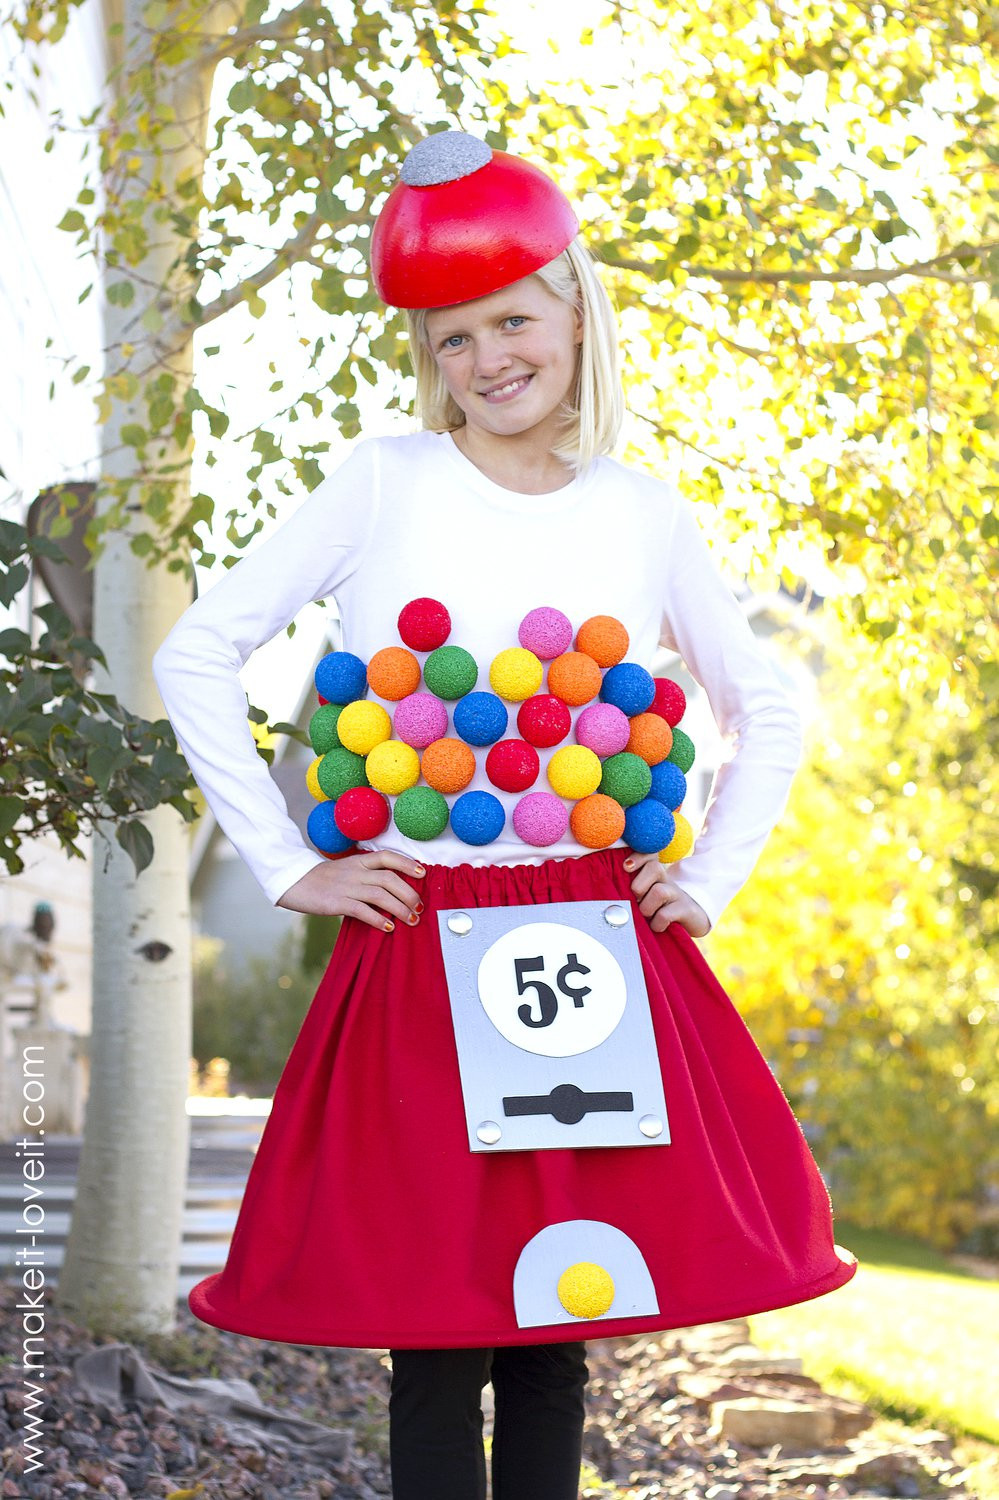 Best ideas about DIY Gumball Costume . Save or Pin 38 of the most CLEVER & UNIQUE Costume Ideas Now.